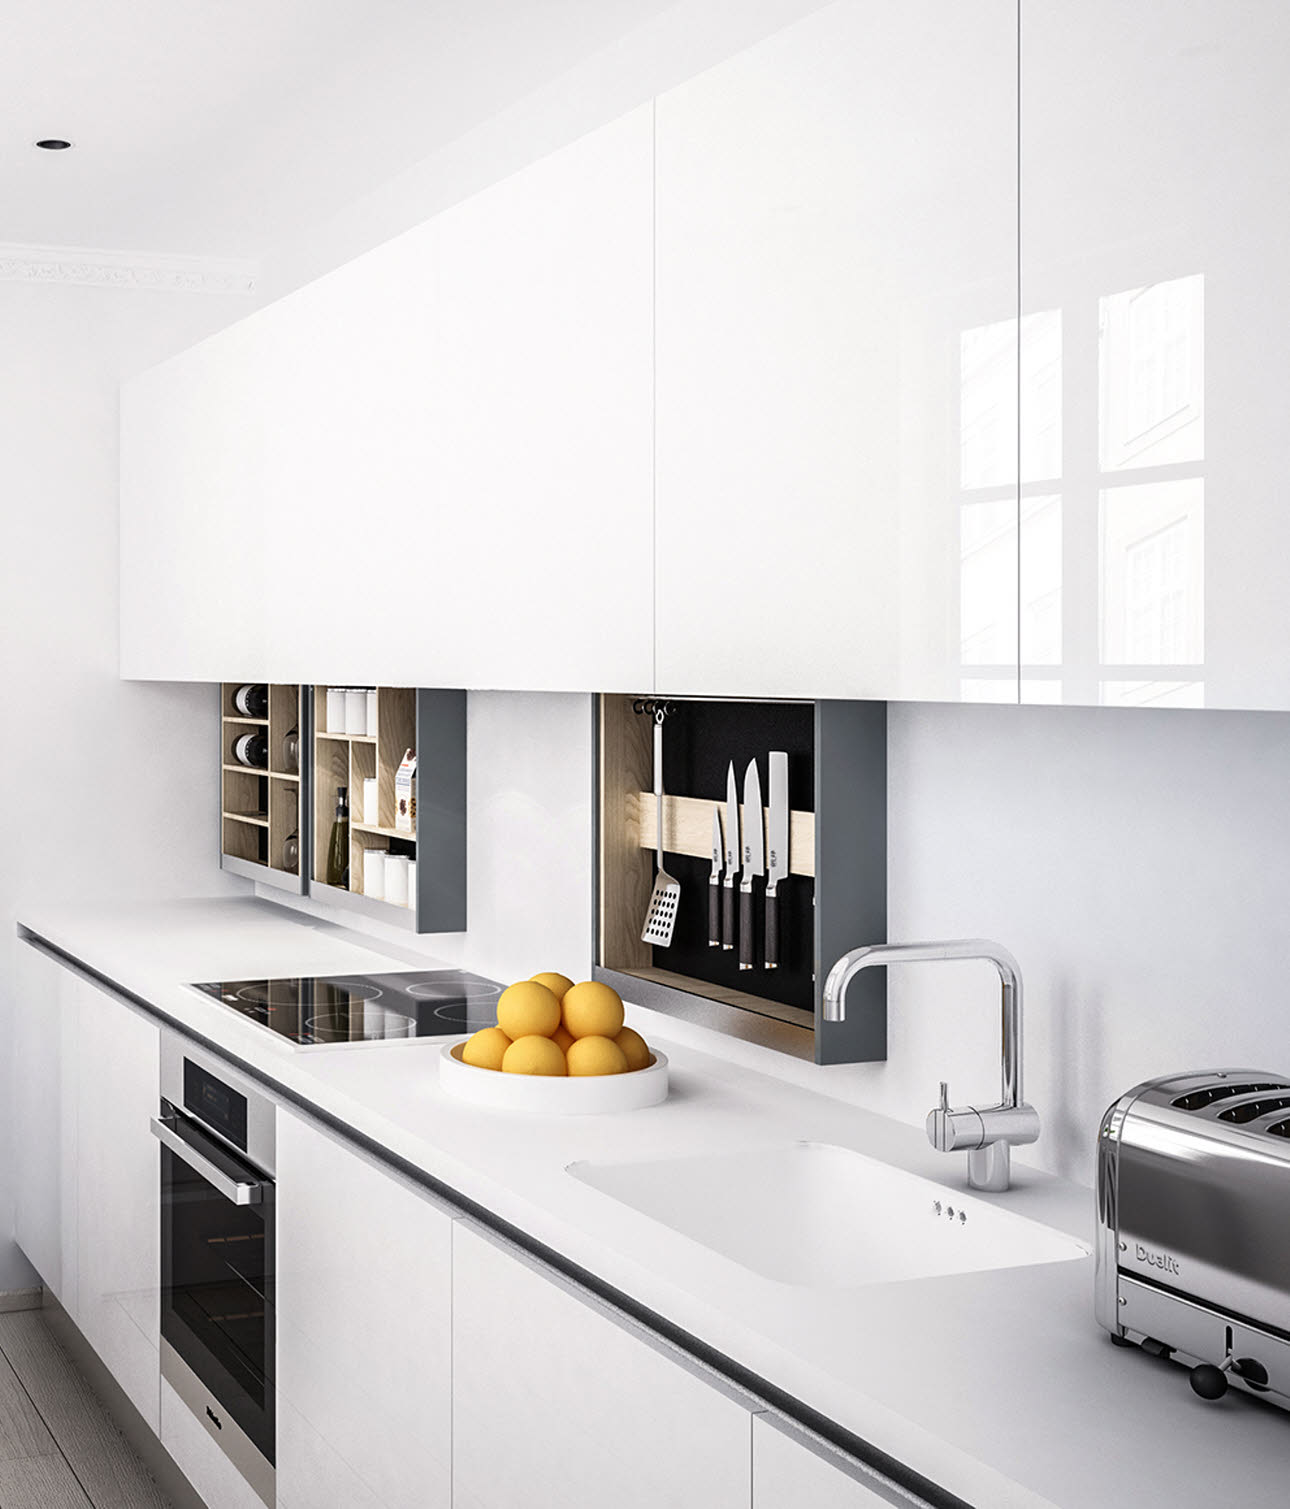 Innovative kitchen shelves with MagicMoveID | HTH